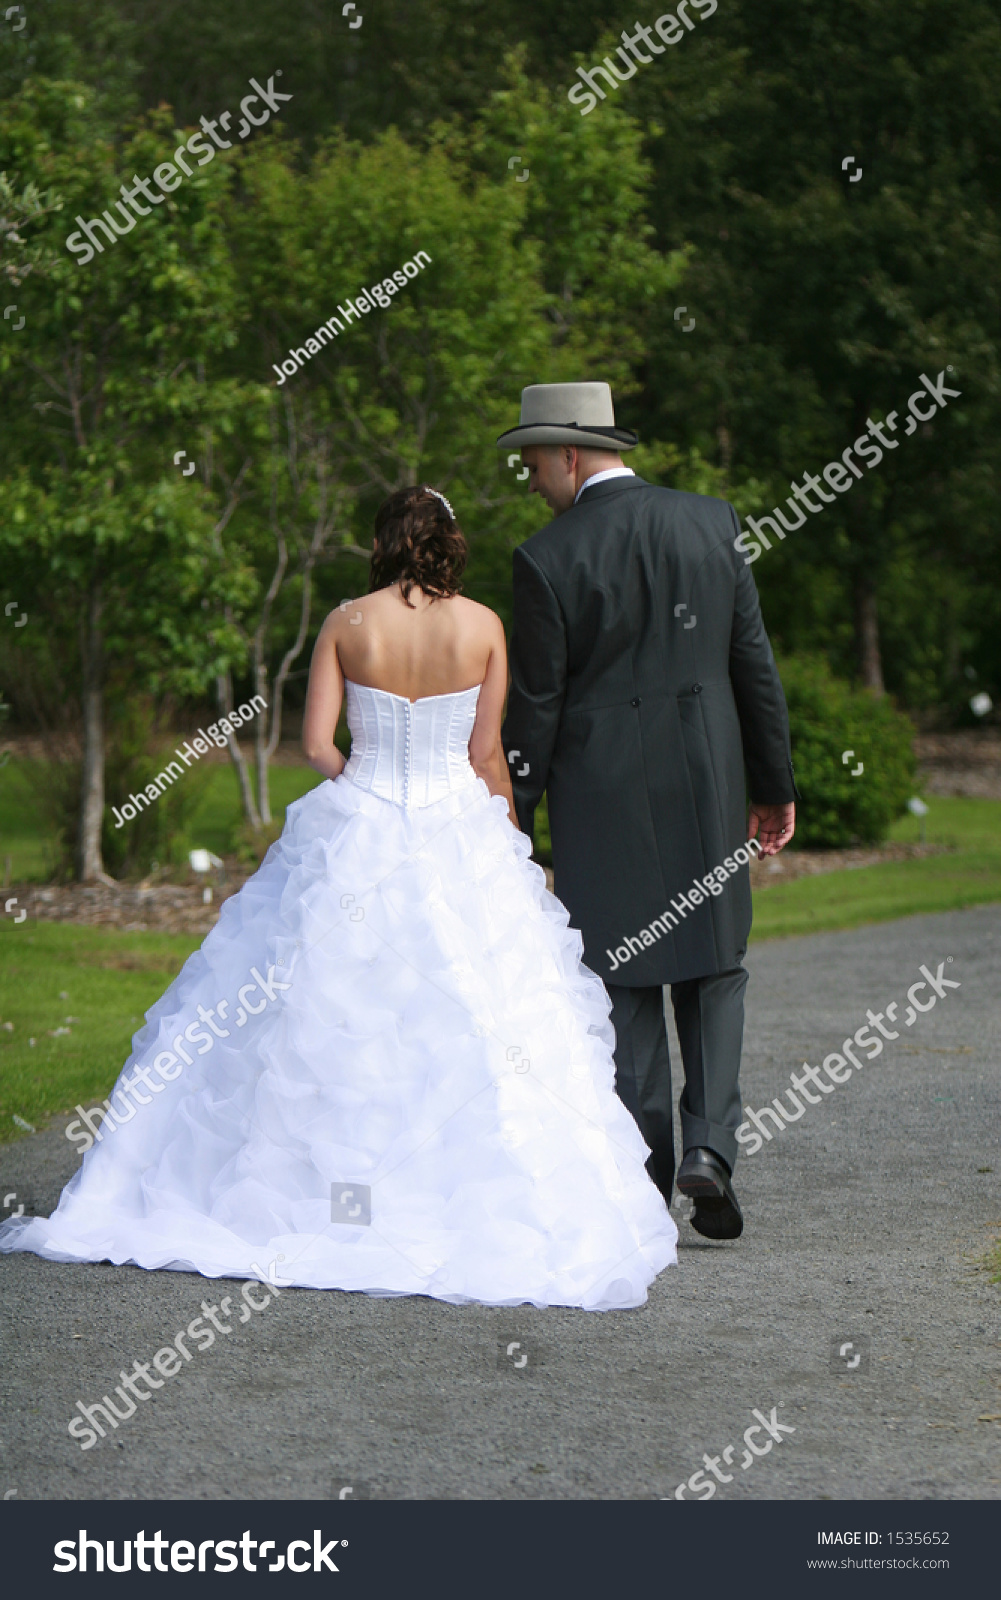 Newlyweds Walking Through A Botanic Garden After The Ceremony Enjoying A Quiet Moment Alone